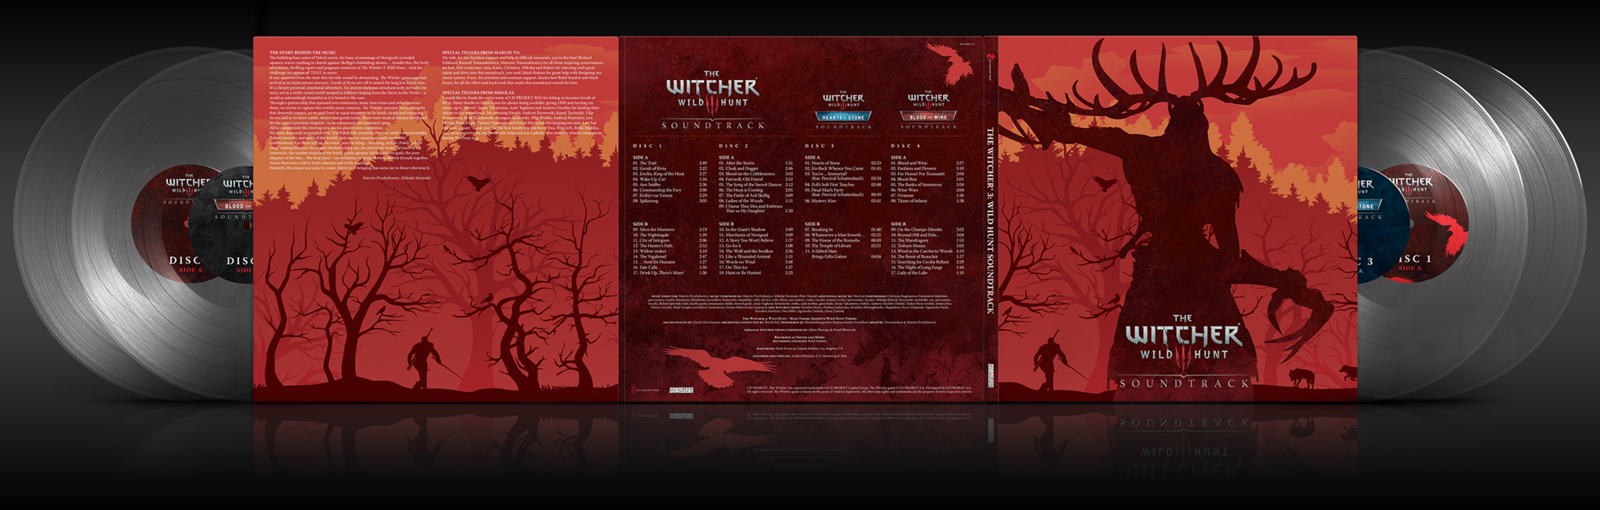 Witcher 3 4 lp clear v2